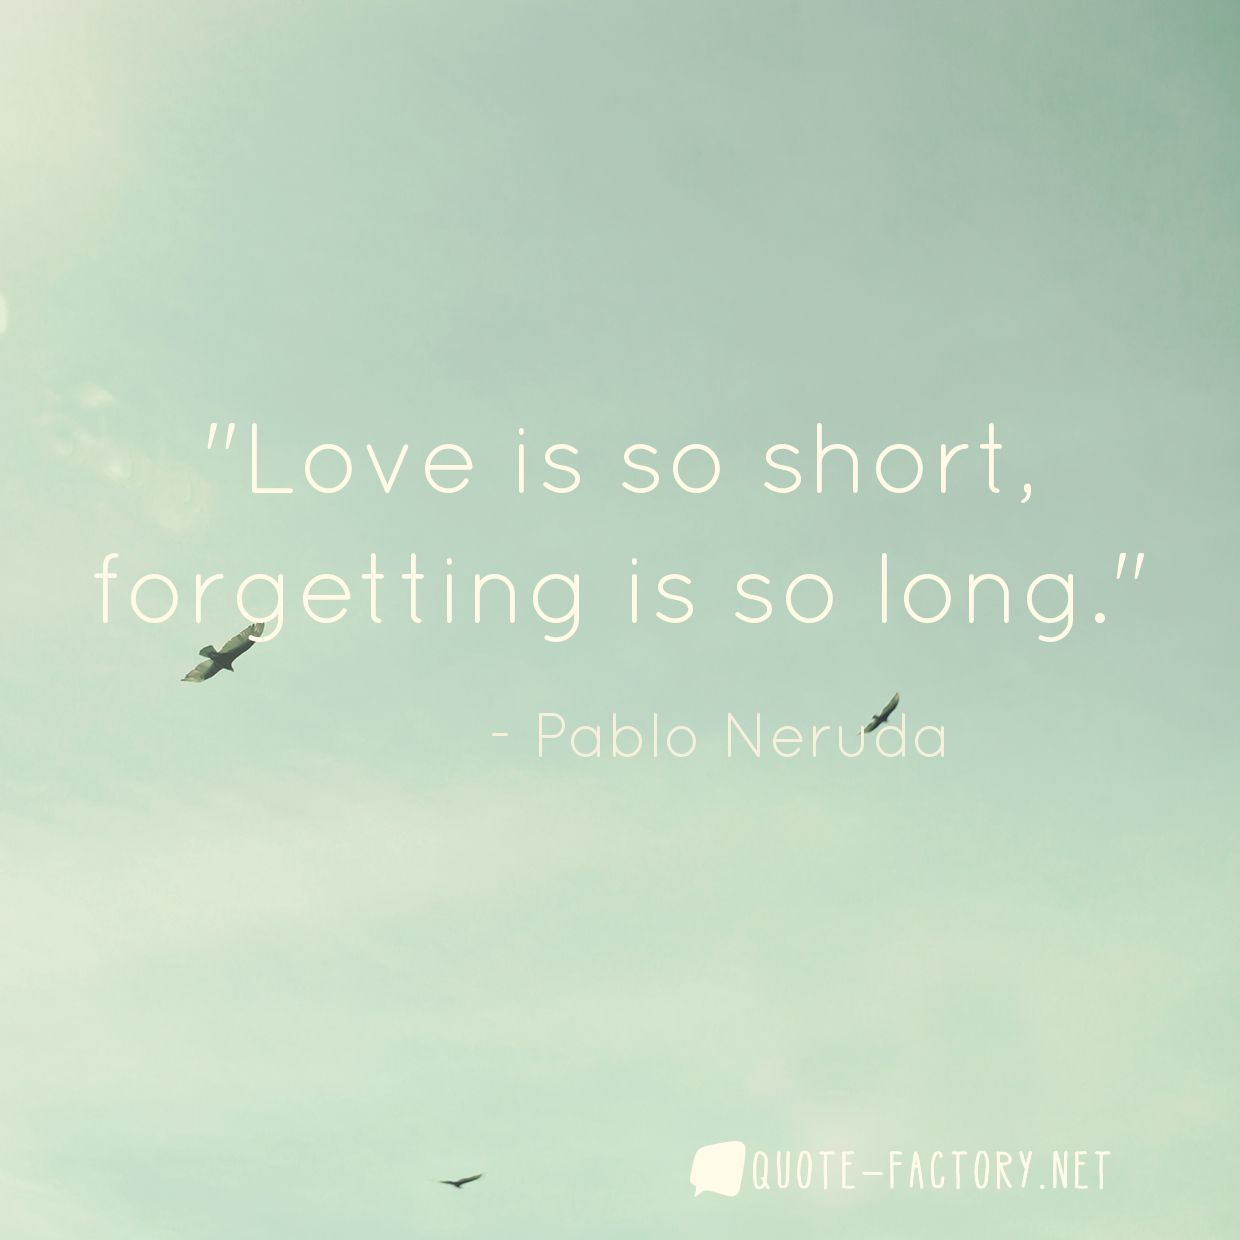 Love is so short, forgetting is so long.